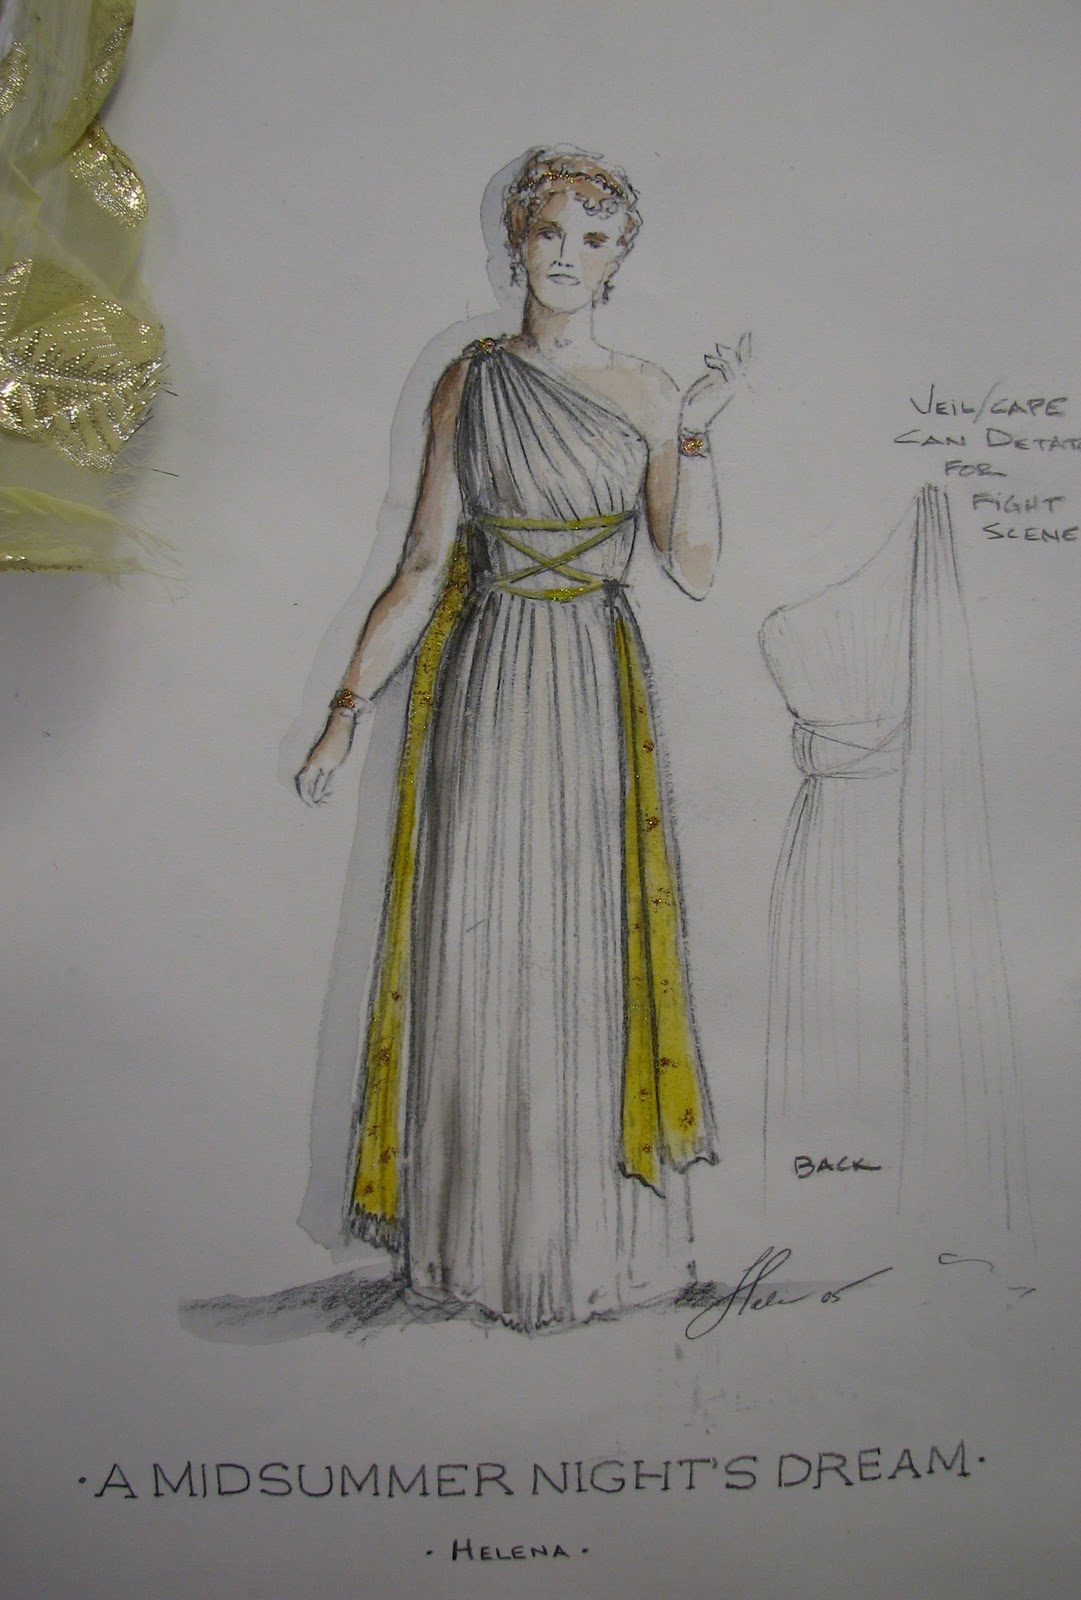 A Design Dream: Martin Thaler; Costume Designer: A Midsummer Night's Dream